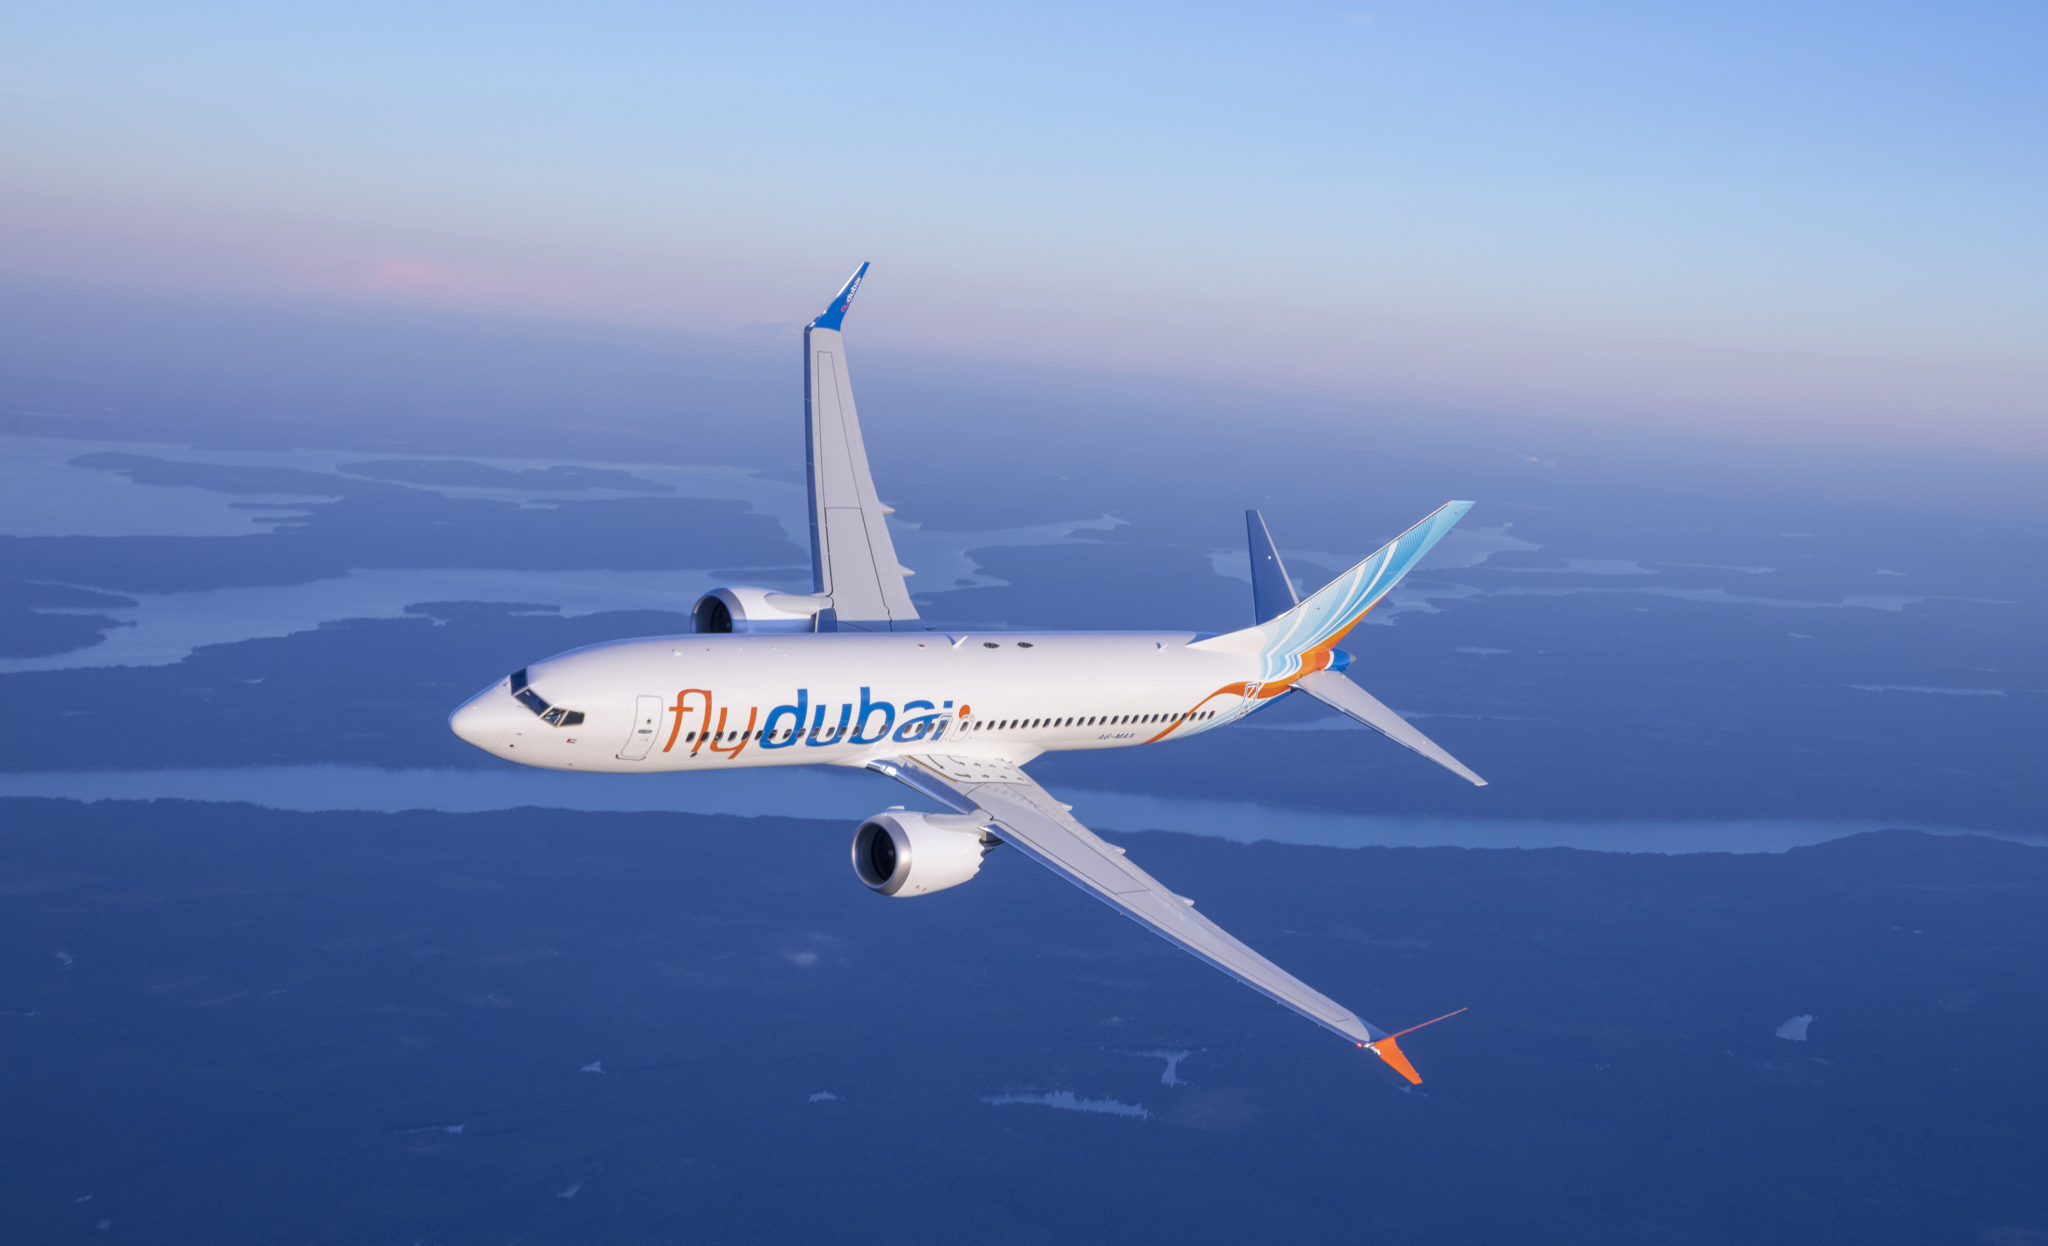 JPA Design leads the way in narrowbody #PaxEx with flydubai MAX 8